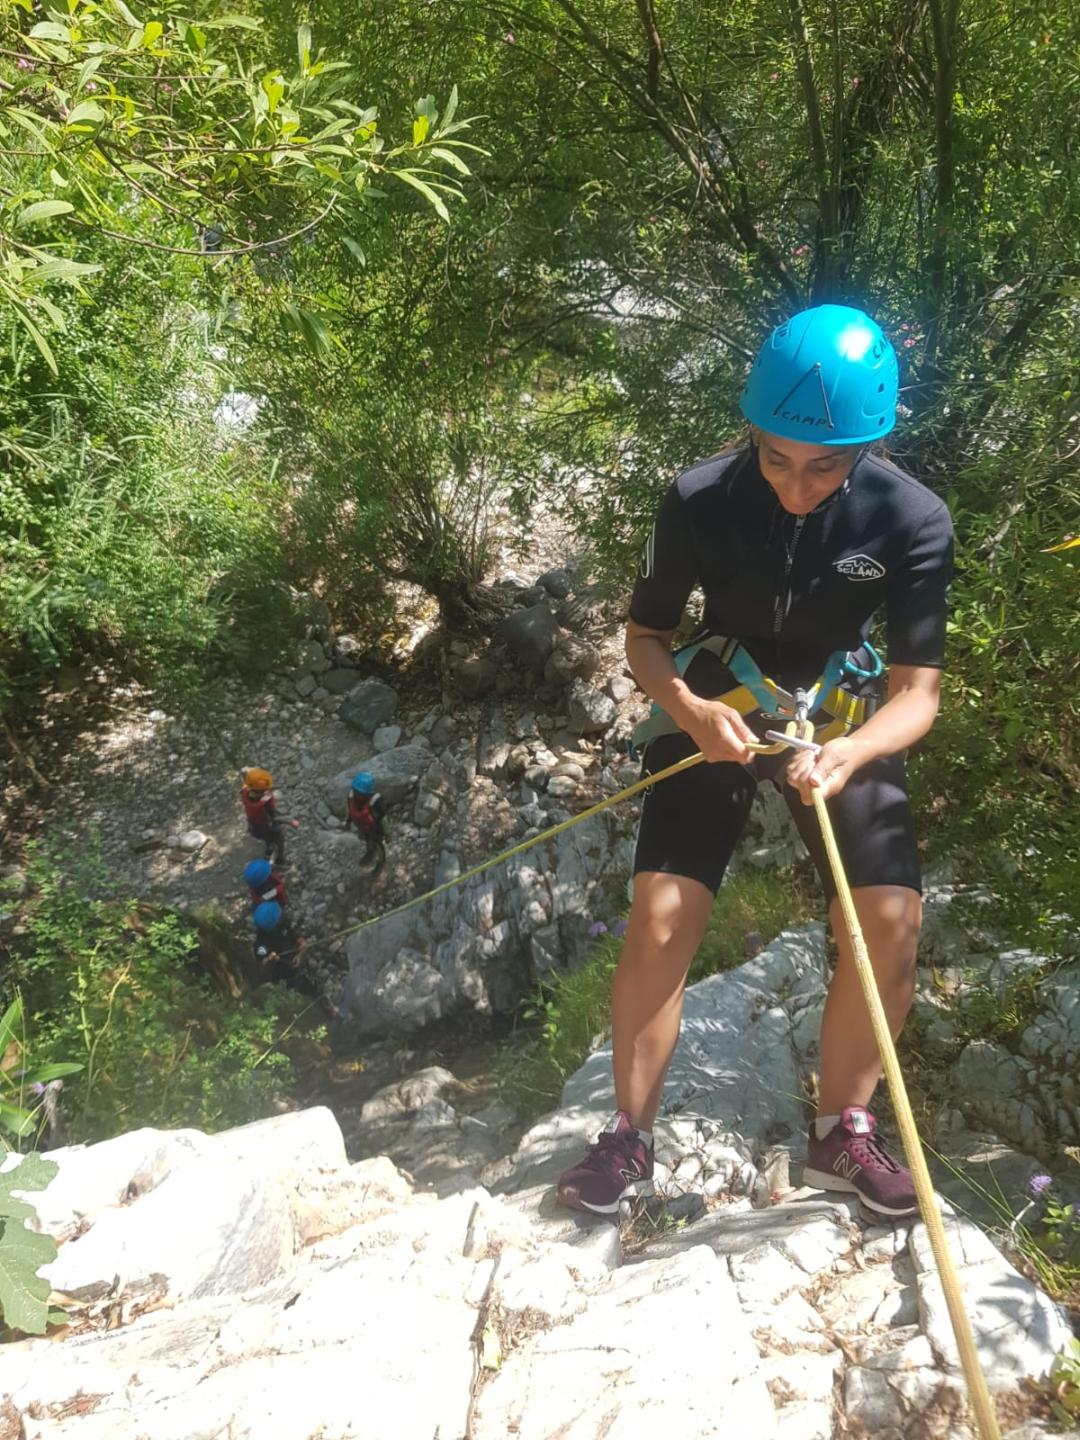 CANYONING LEVEL 1 Canyon descent through waterfall and natural waterslides 07 | Marbella Team4you